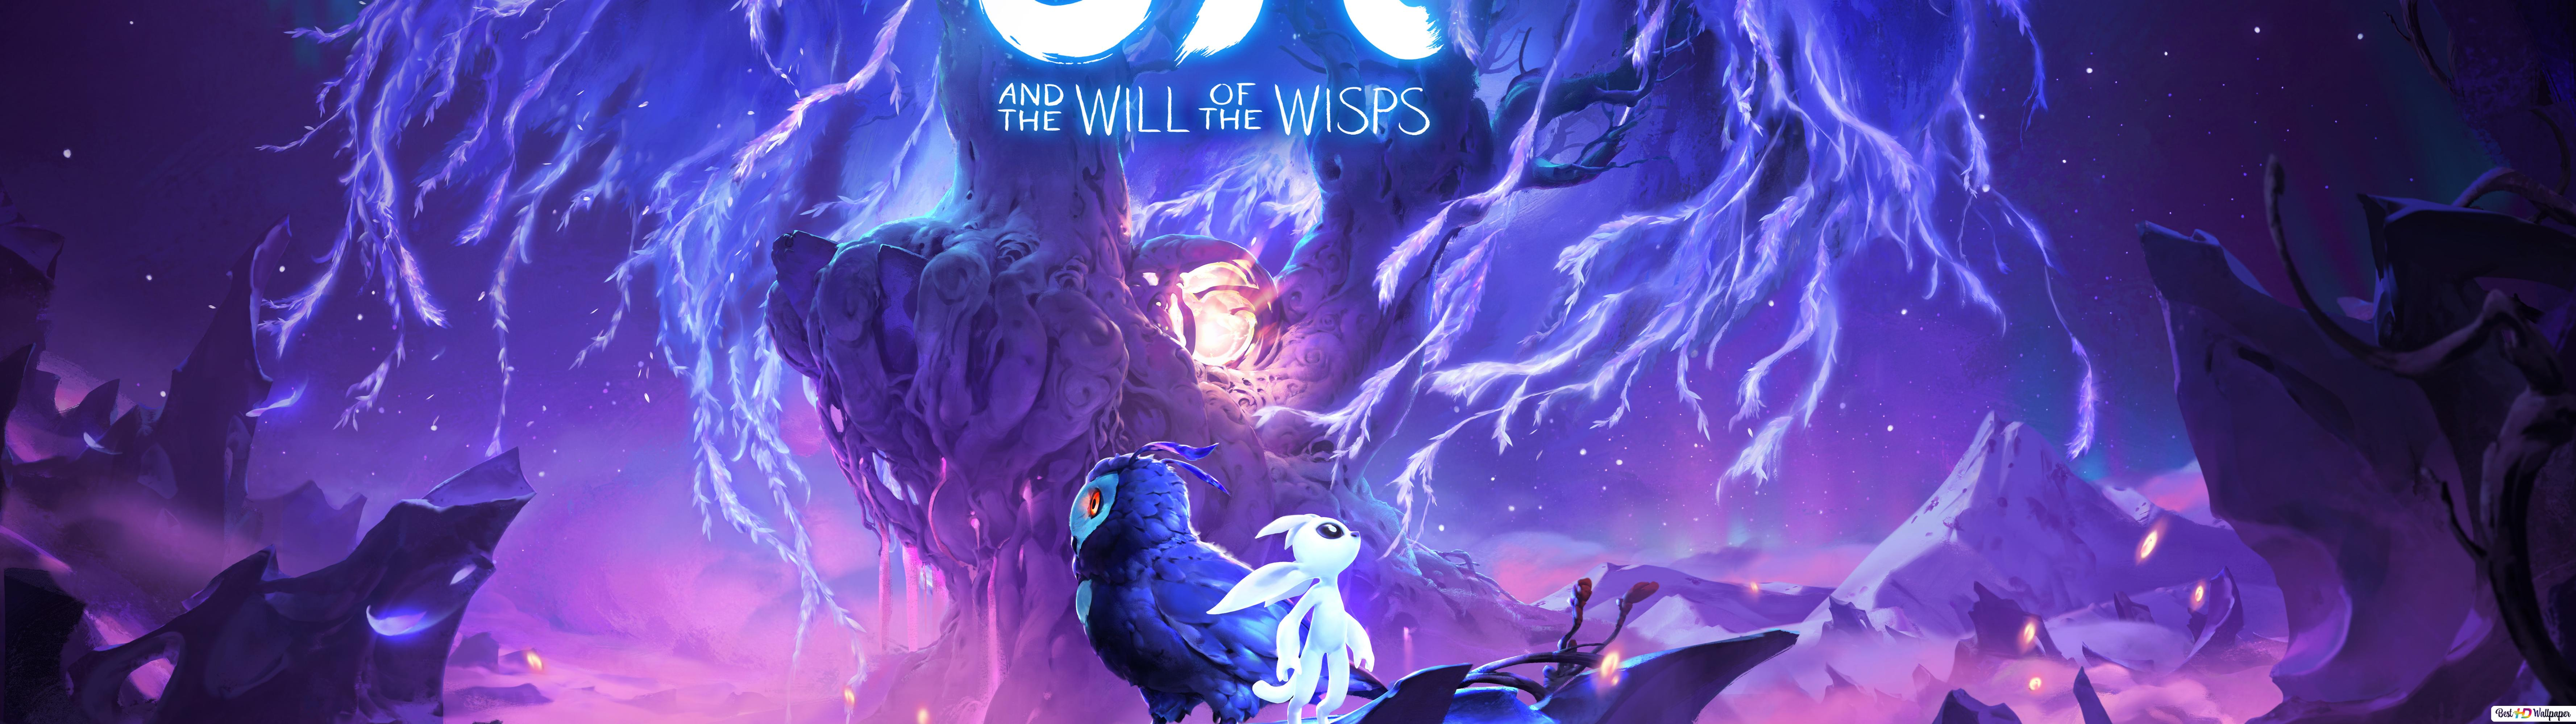 Ori And The Will Of The Wisps Video Game Hd Wallpaper Download